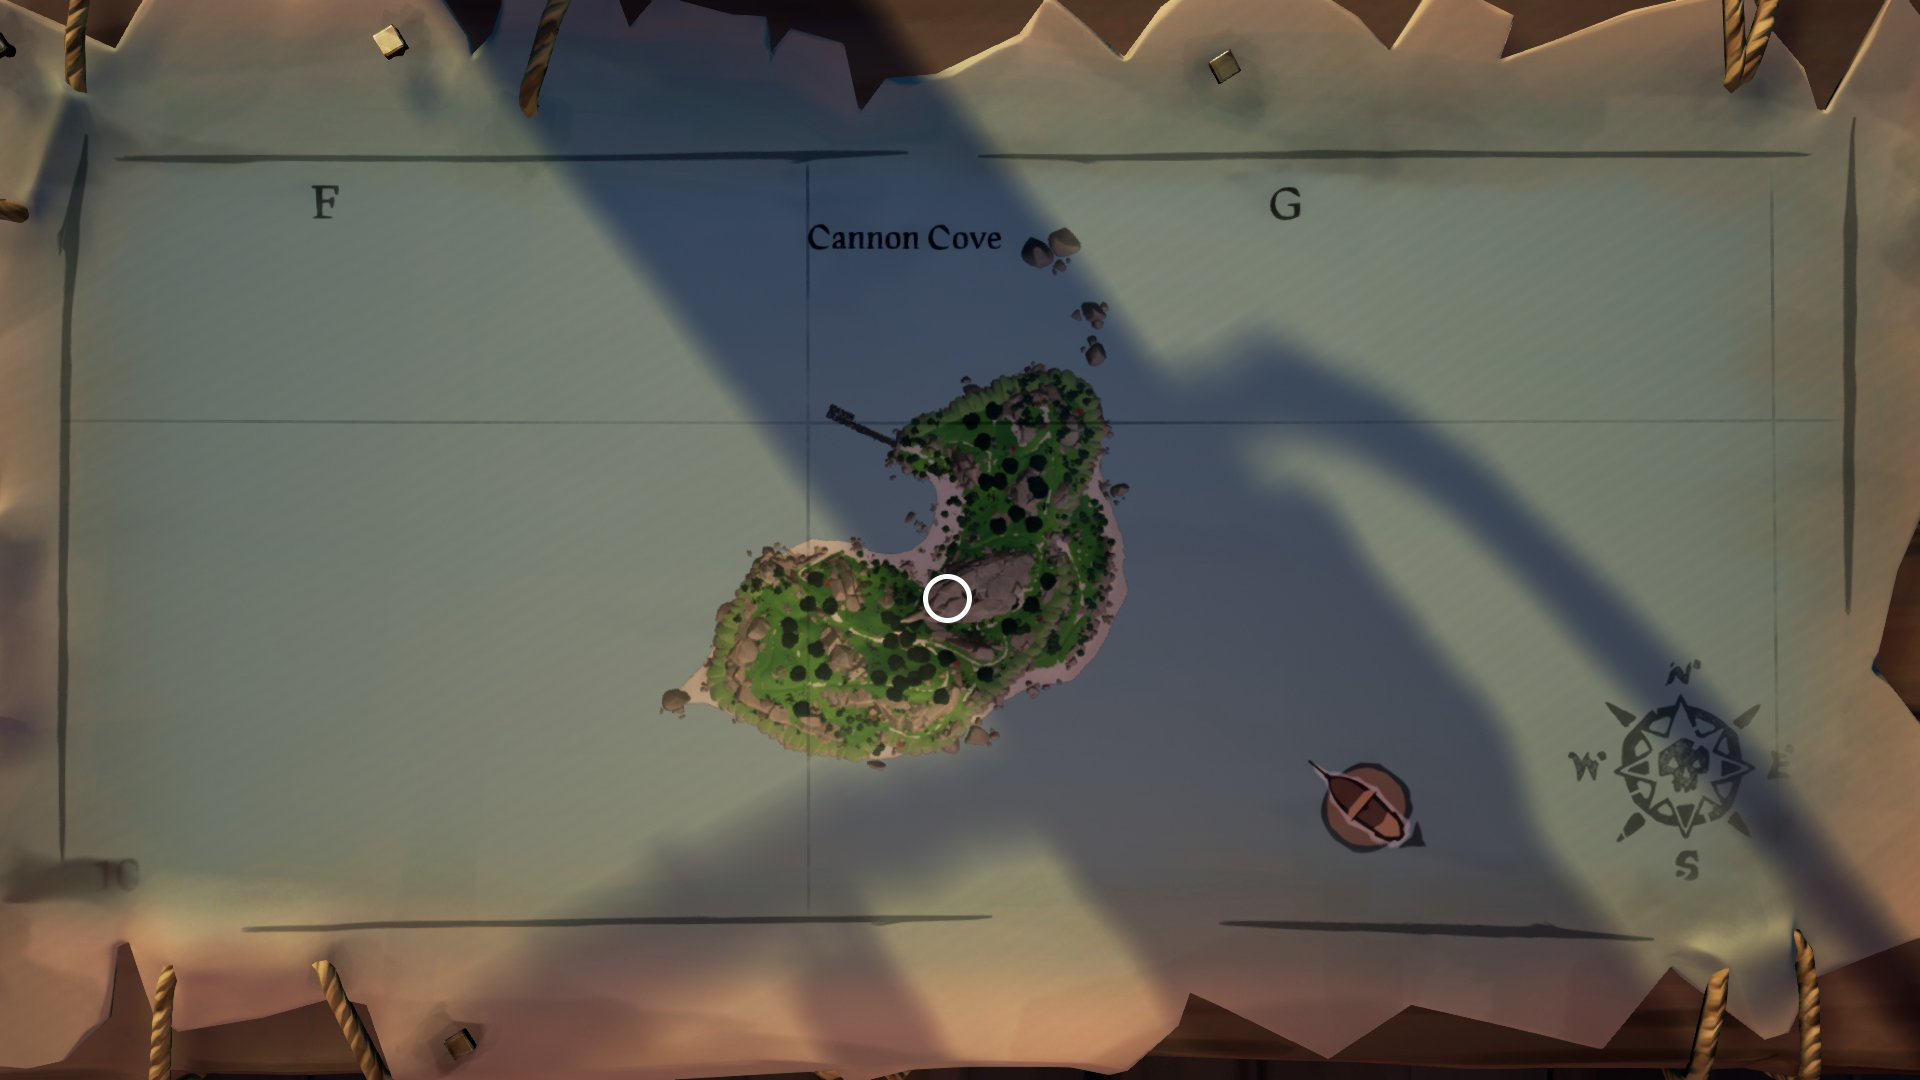 cannon cove beacon sea of thieves